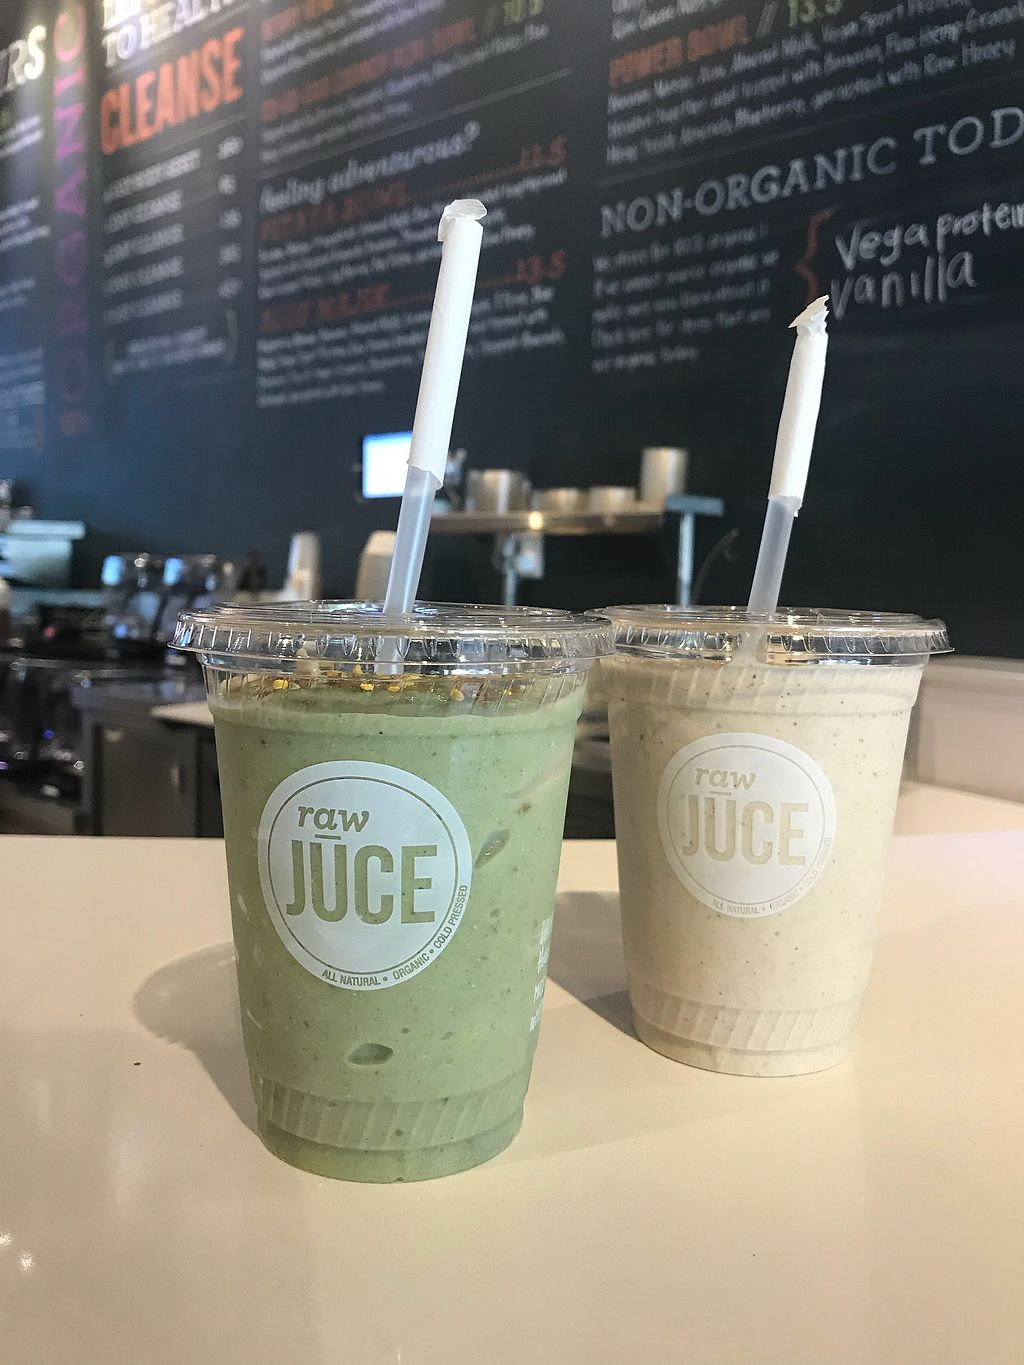 """Photo of Raw Juce  by <a href=""""/members/profile/VictoriaLozada"""">VictoriaLozada</a> <br/>Amazing smoothies  <br/> September 30, 2017  - <a href='/contact/abuse/image/82993/309962'>Report</a>"""